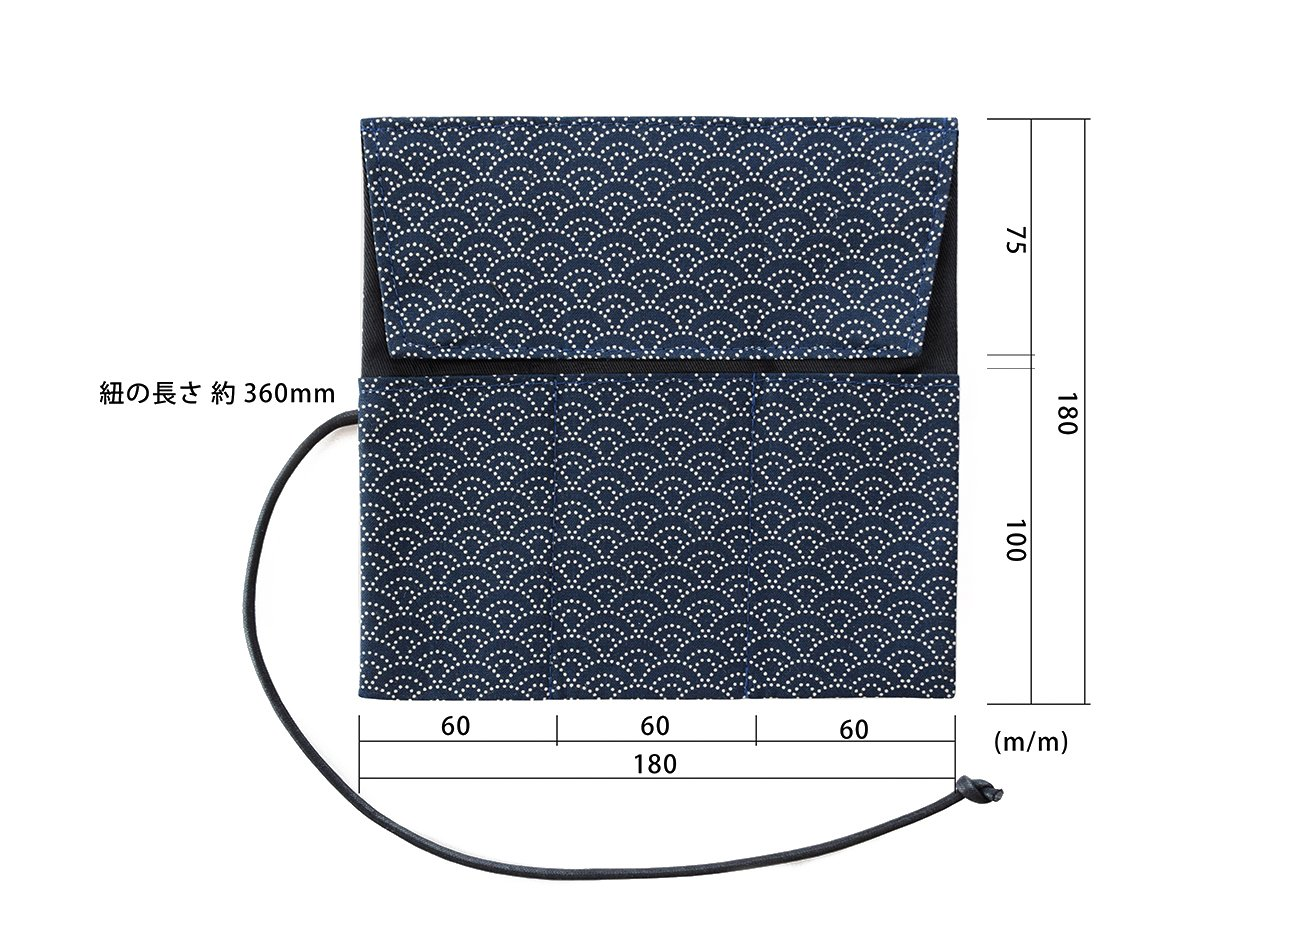 1 X Saki P-661 Roll Pen Case with Traditional Japanese Fabric - Navy by Saki Collection (Image #4)